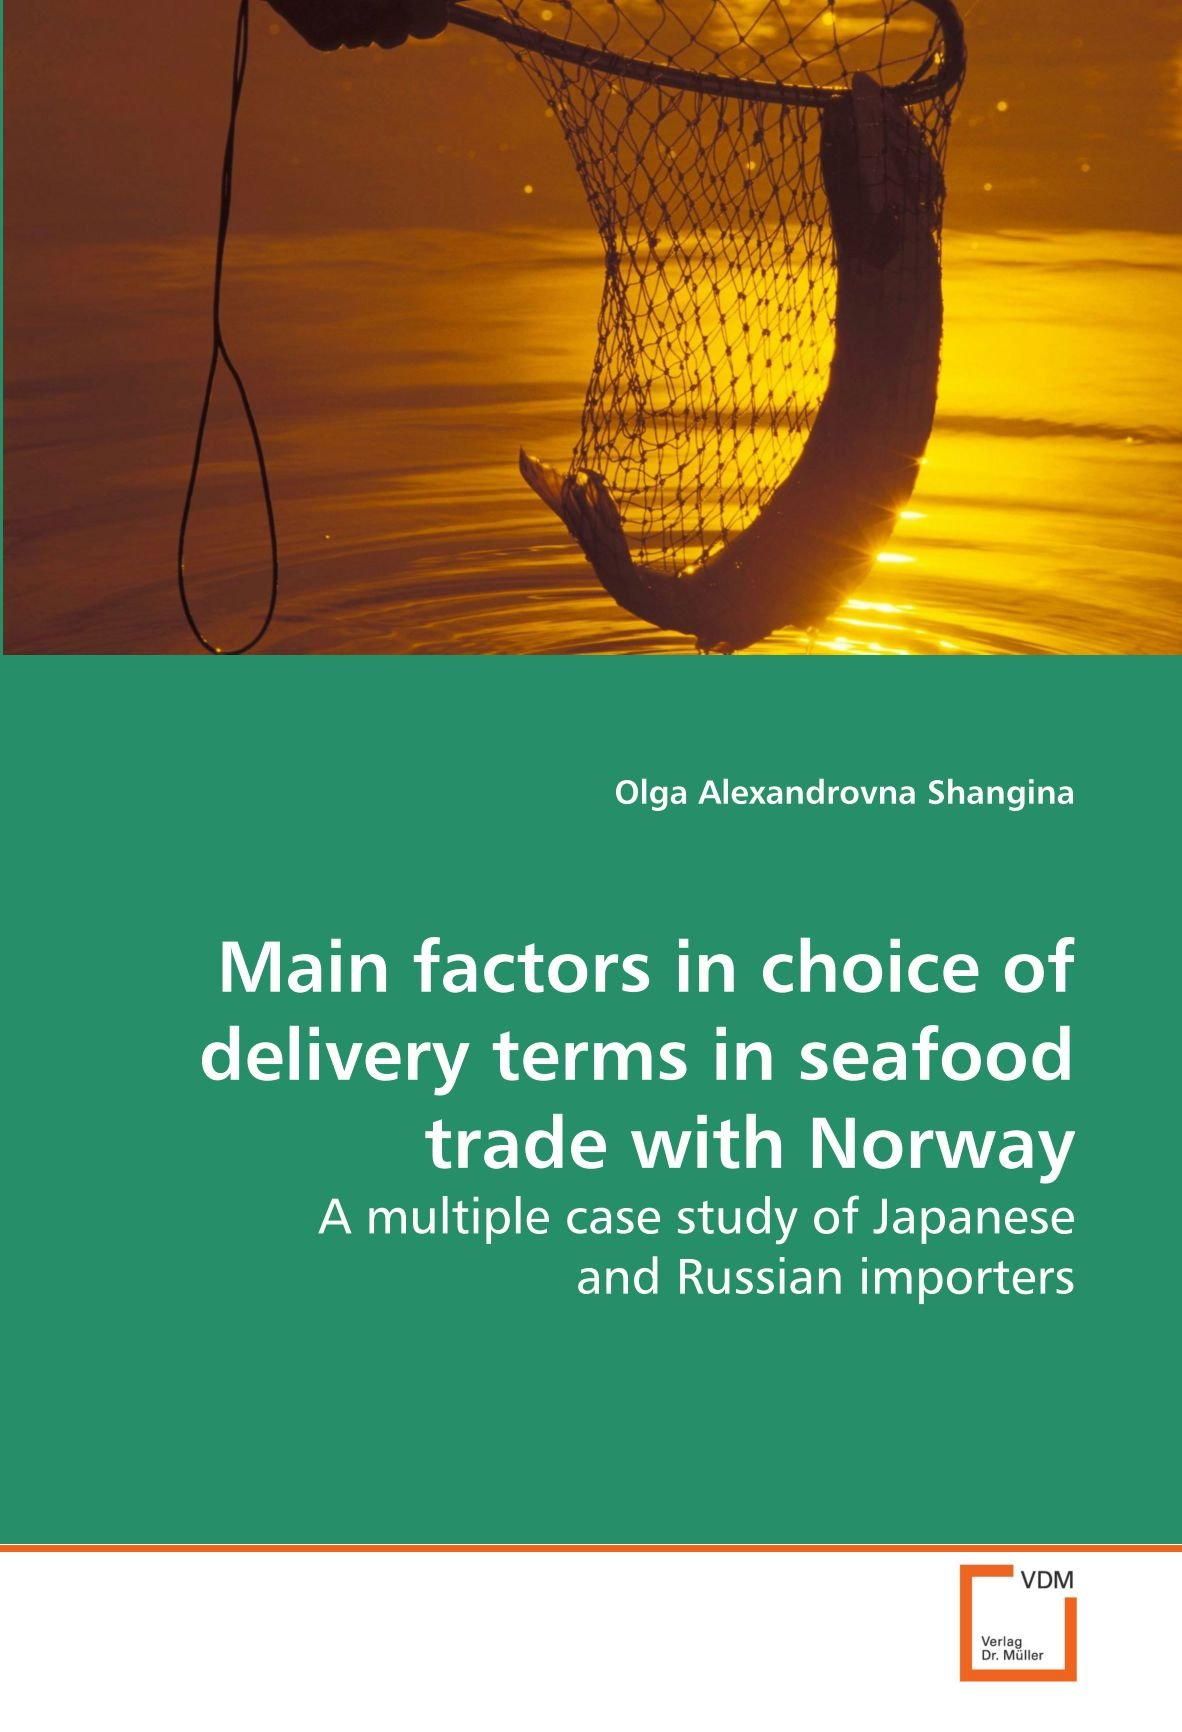 Main factors in choice of delivery terms in seafood trade with